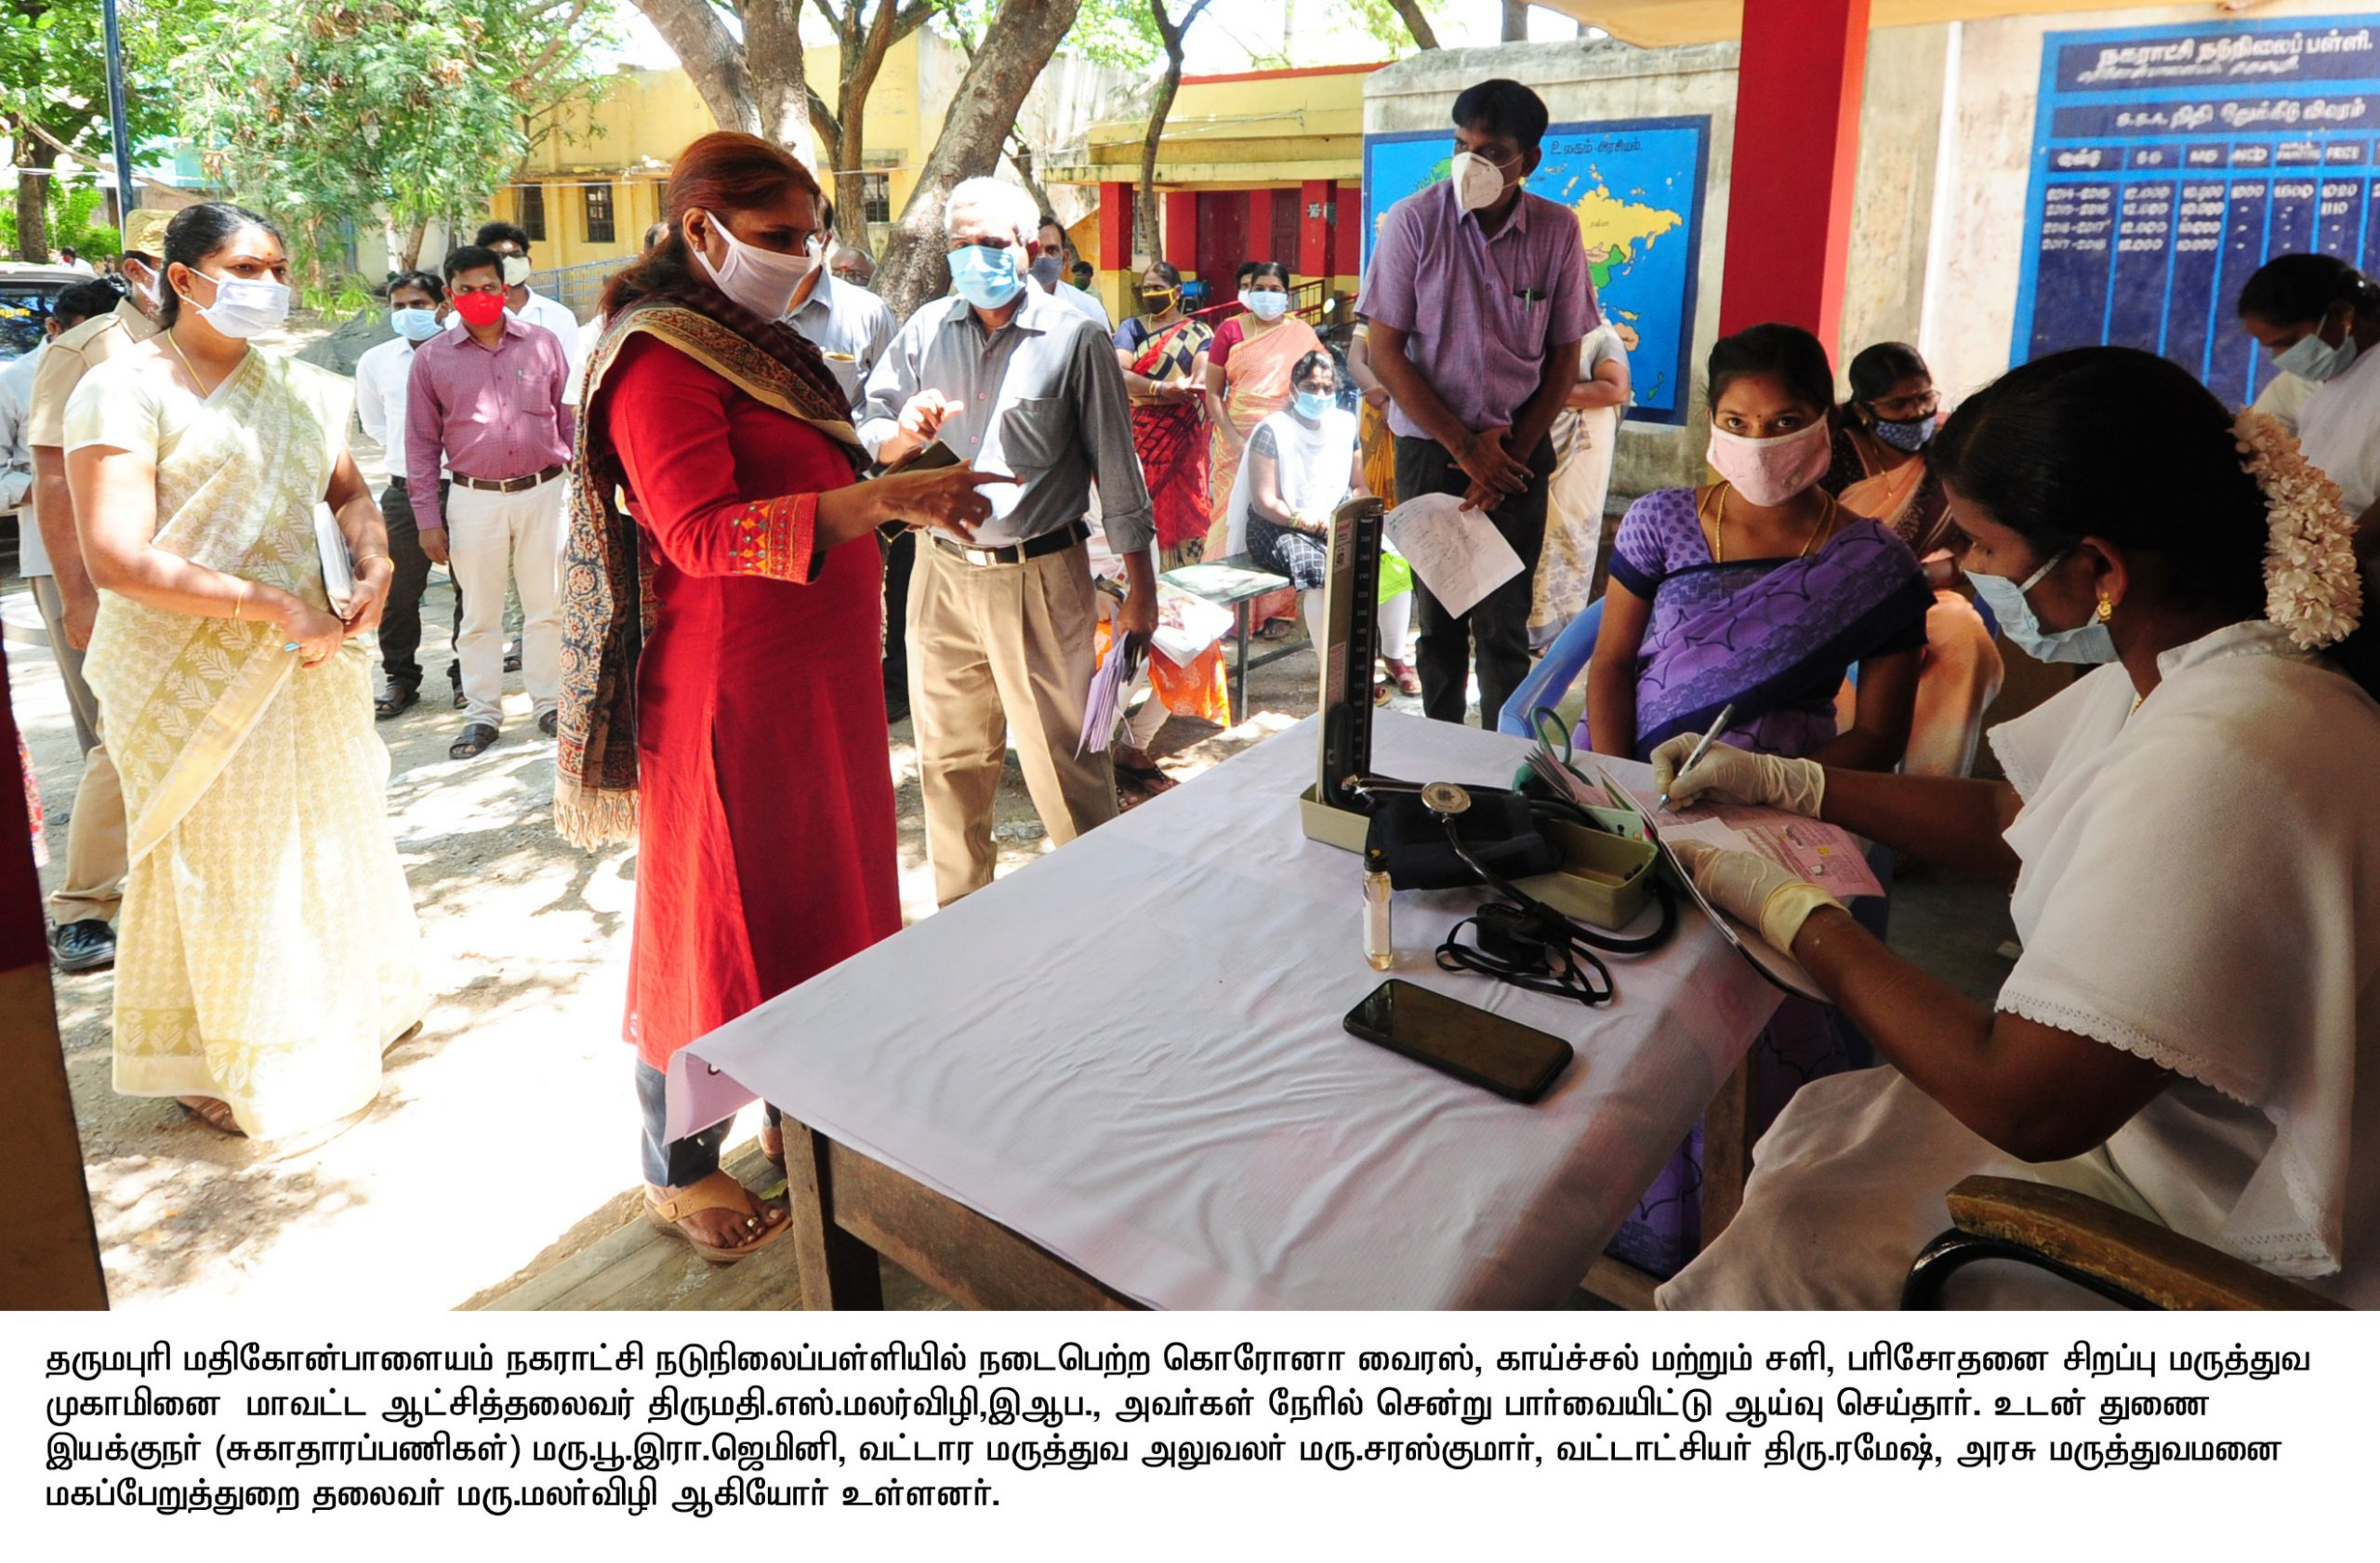 The District Collector visited and inspected the Corona virus, cold and flu special testing camp